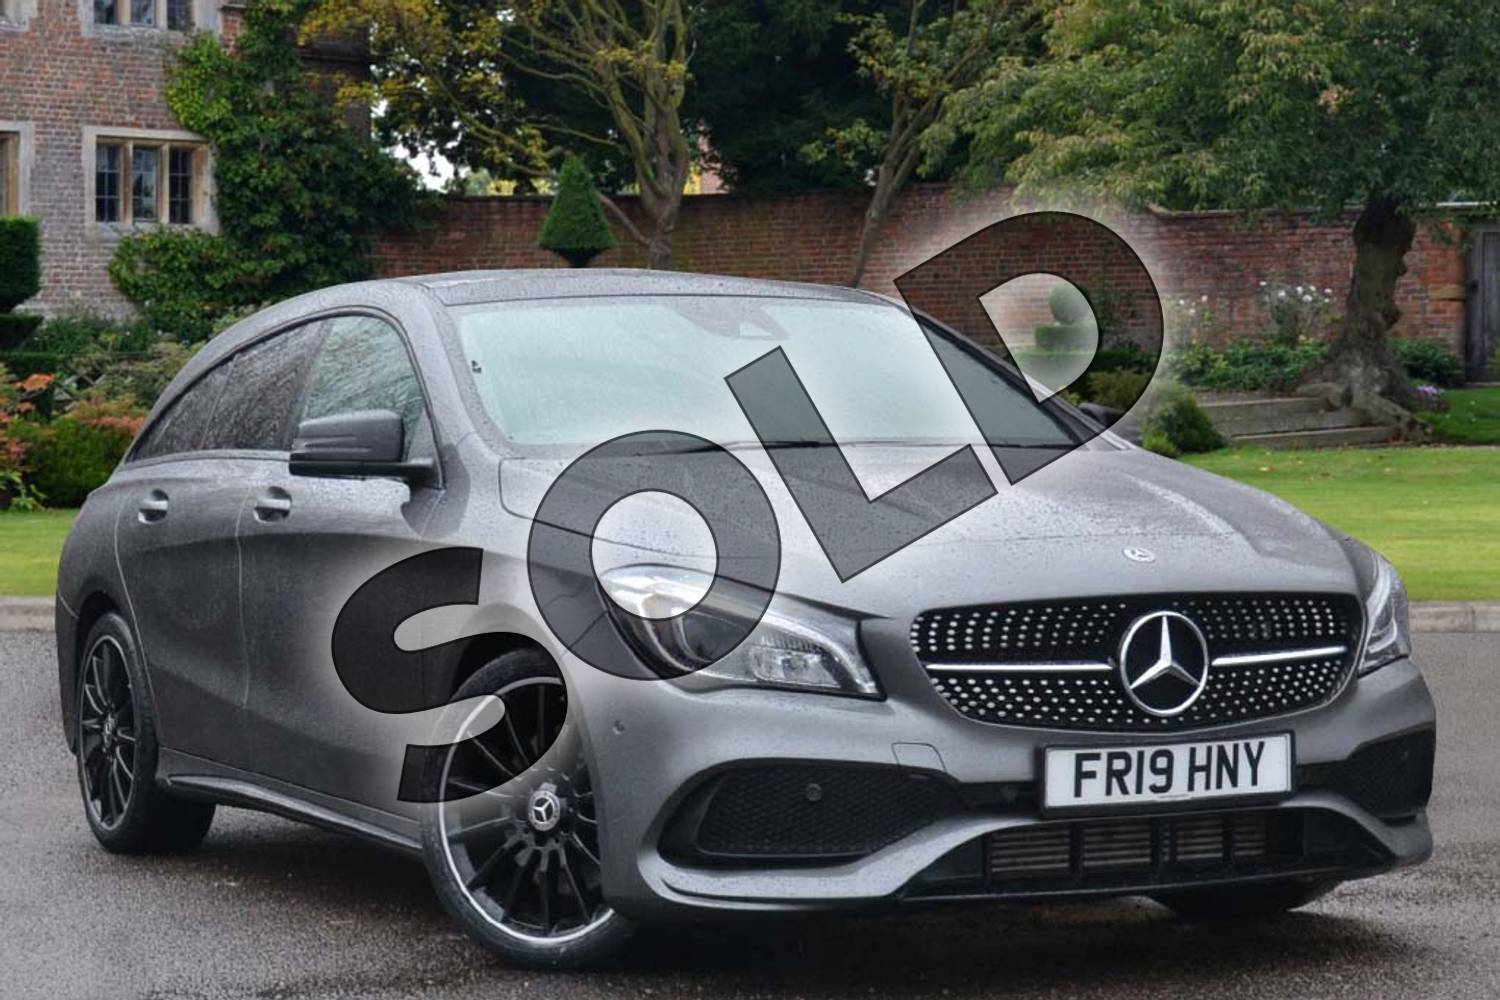 2019 Mercedes-Benz CLA Class Diesel Shooting Brake Diesel Shooting Brake CLA 220d AMG Line Night Ed Pls 4Matic 5dr Tip Auto in mountain grey metallic at Mercedes-Benz of Lincoln